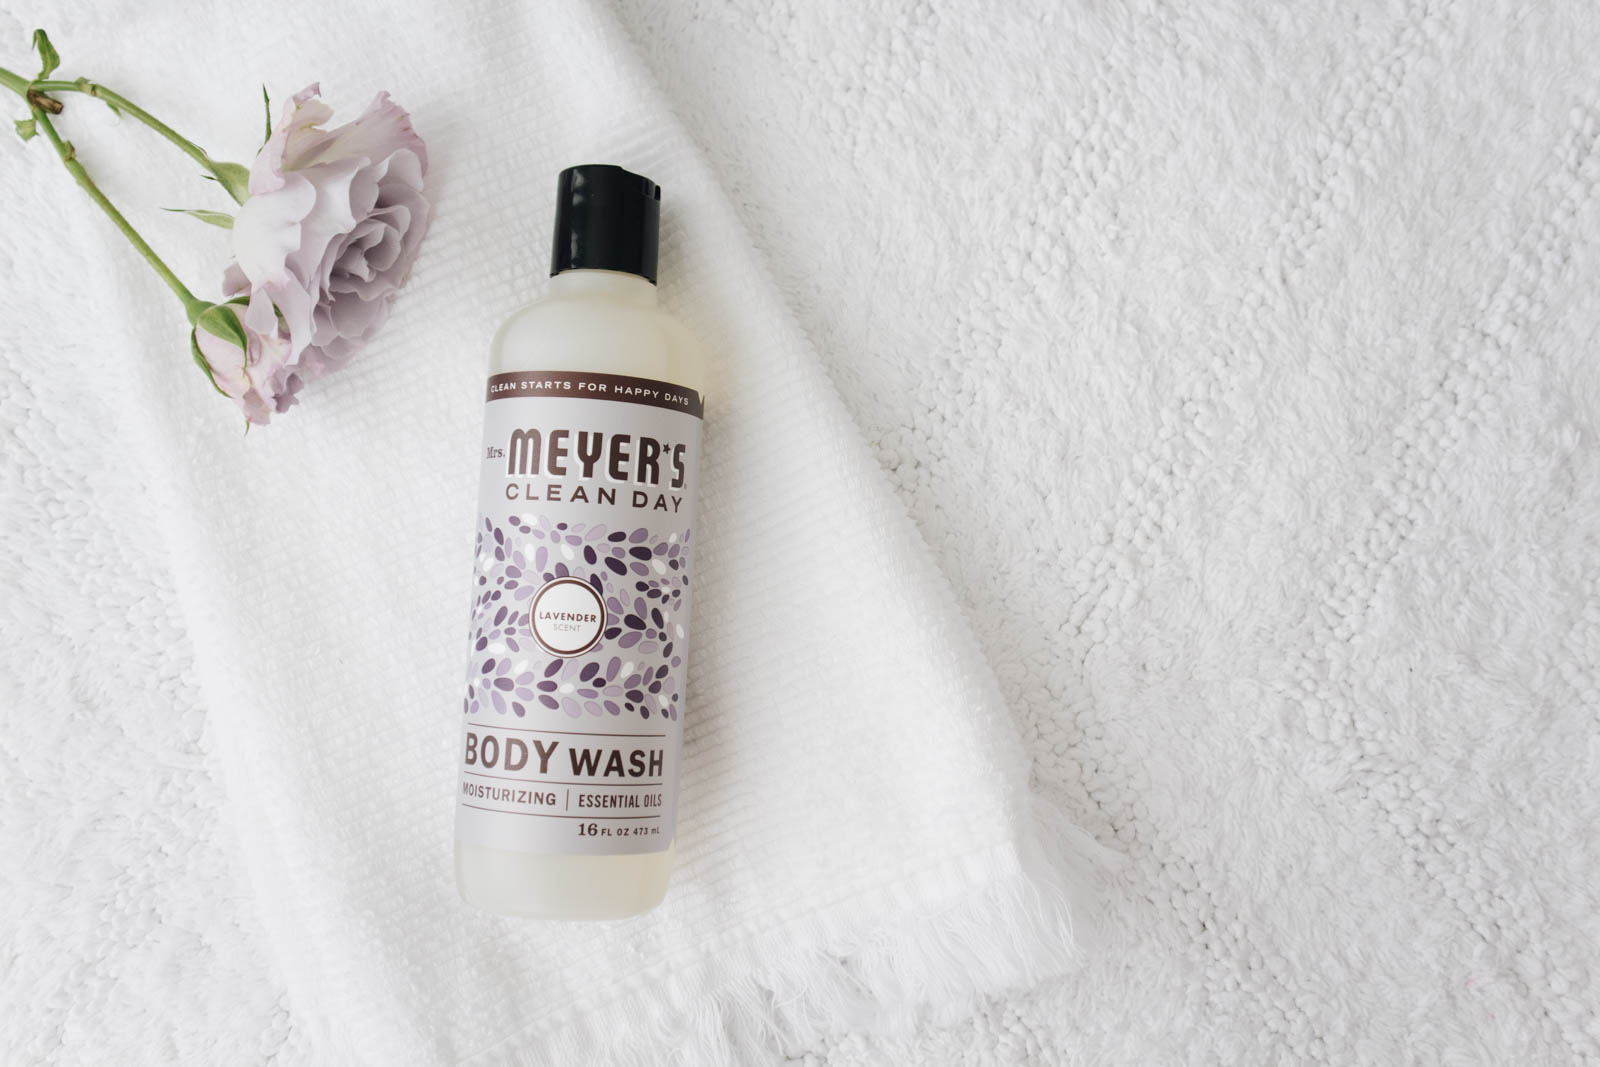 mrs. meyer's lavender body wash